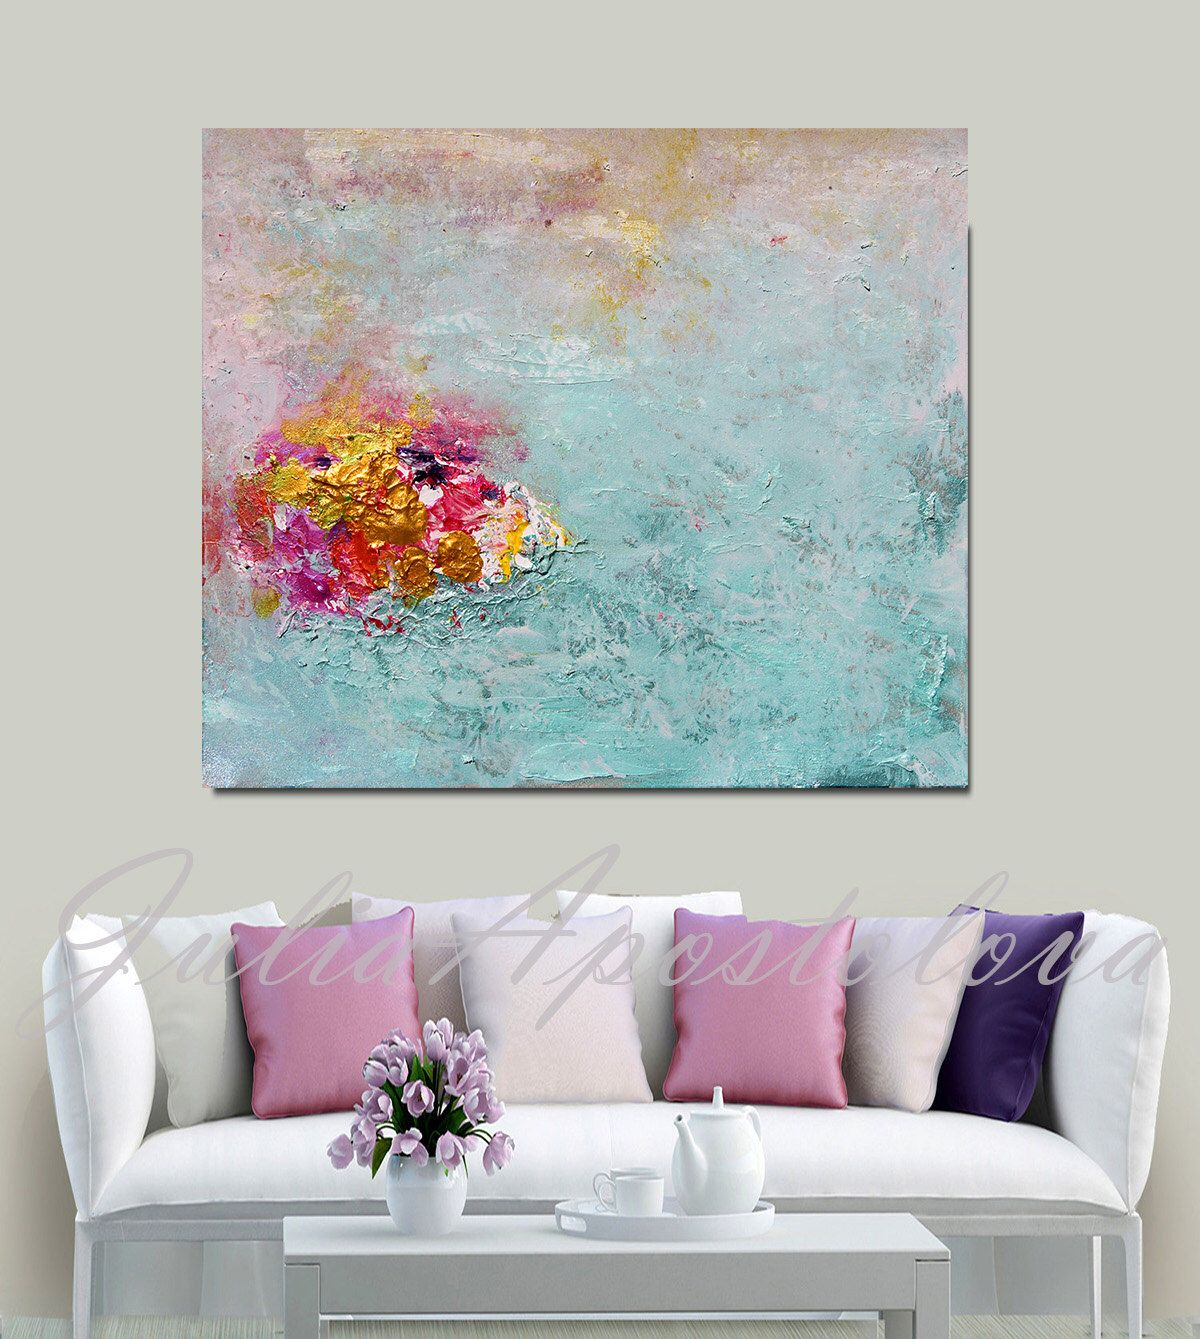 Beach decor wall art modern abstract art print minimalist - Minimalist Painting Turquoise And Pink Gold Abstract Print Turquoise Painting Gold Art Landscape Painting Sea Abstract Beach Decor